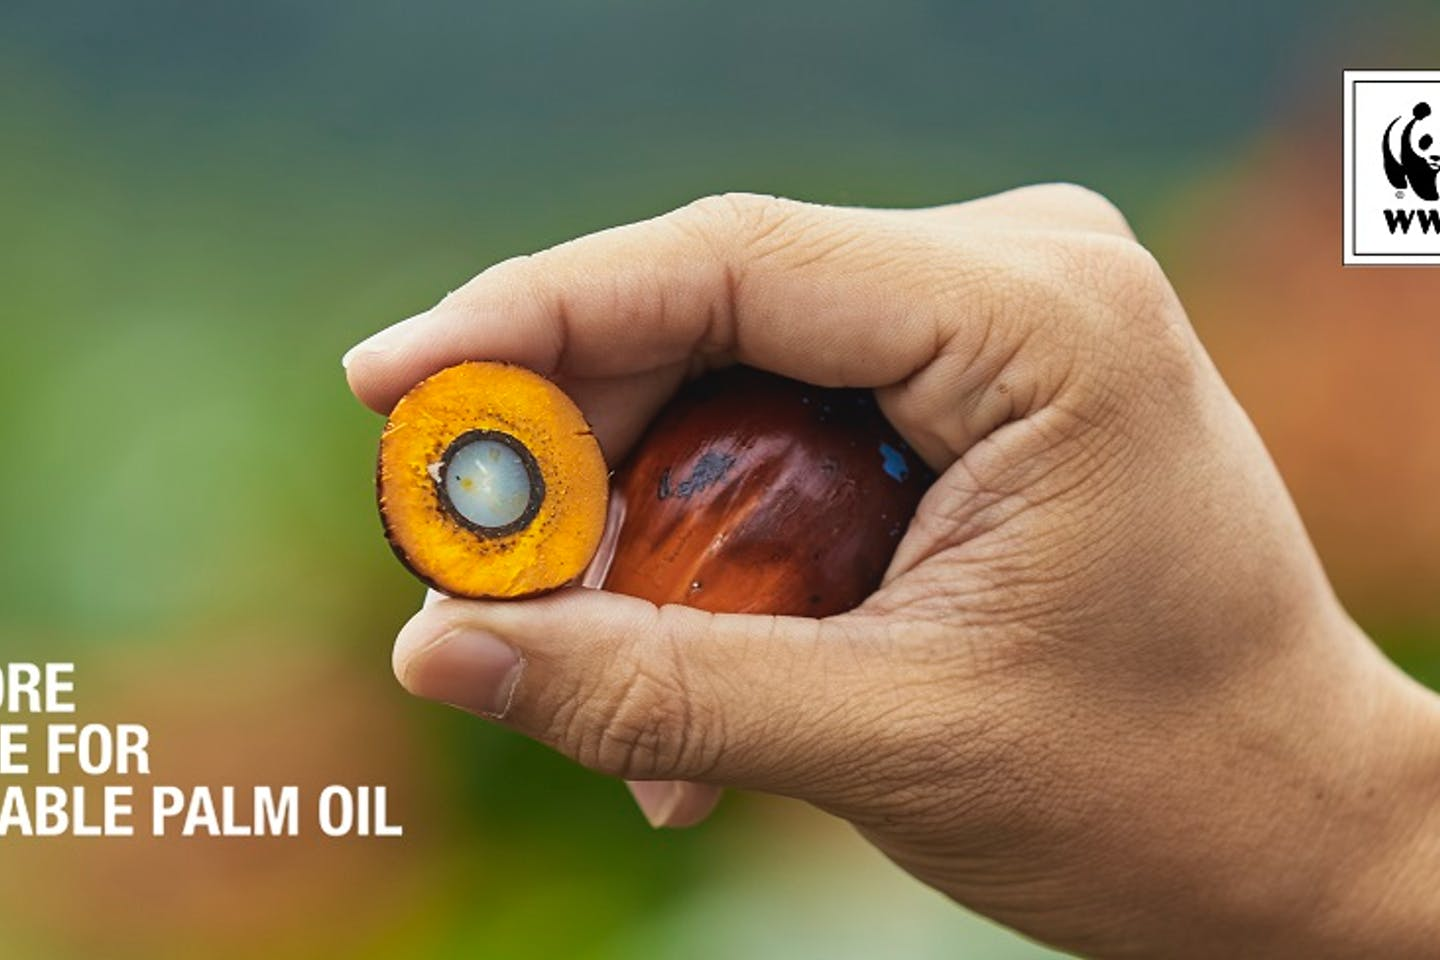 WWF Singapore Alliance on sustainable palm oil